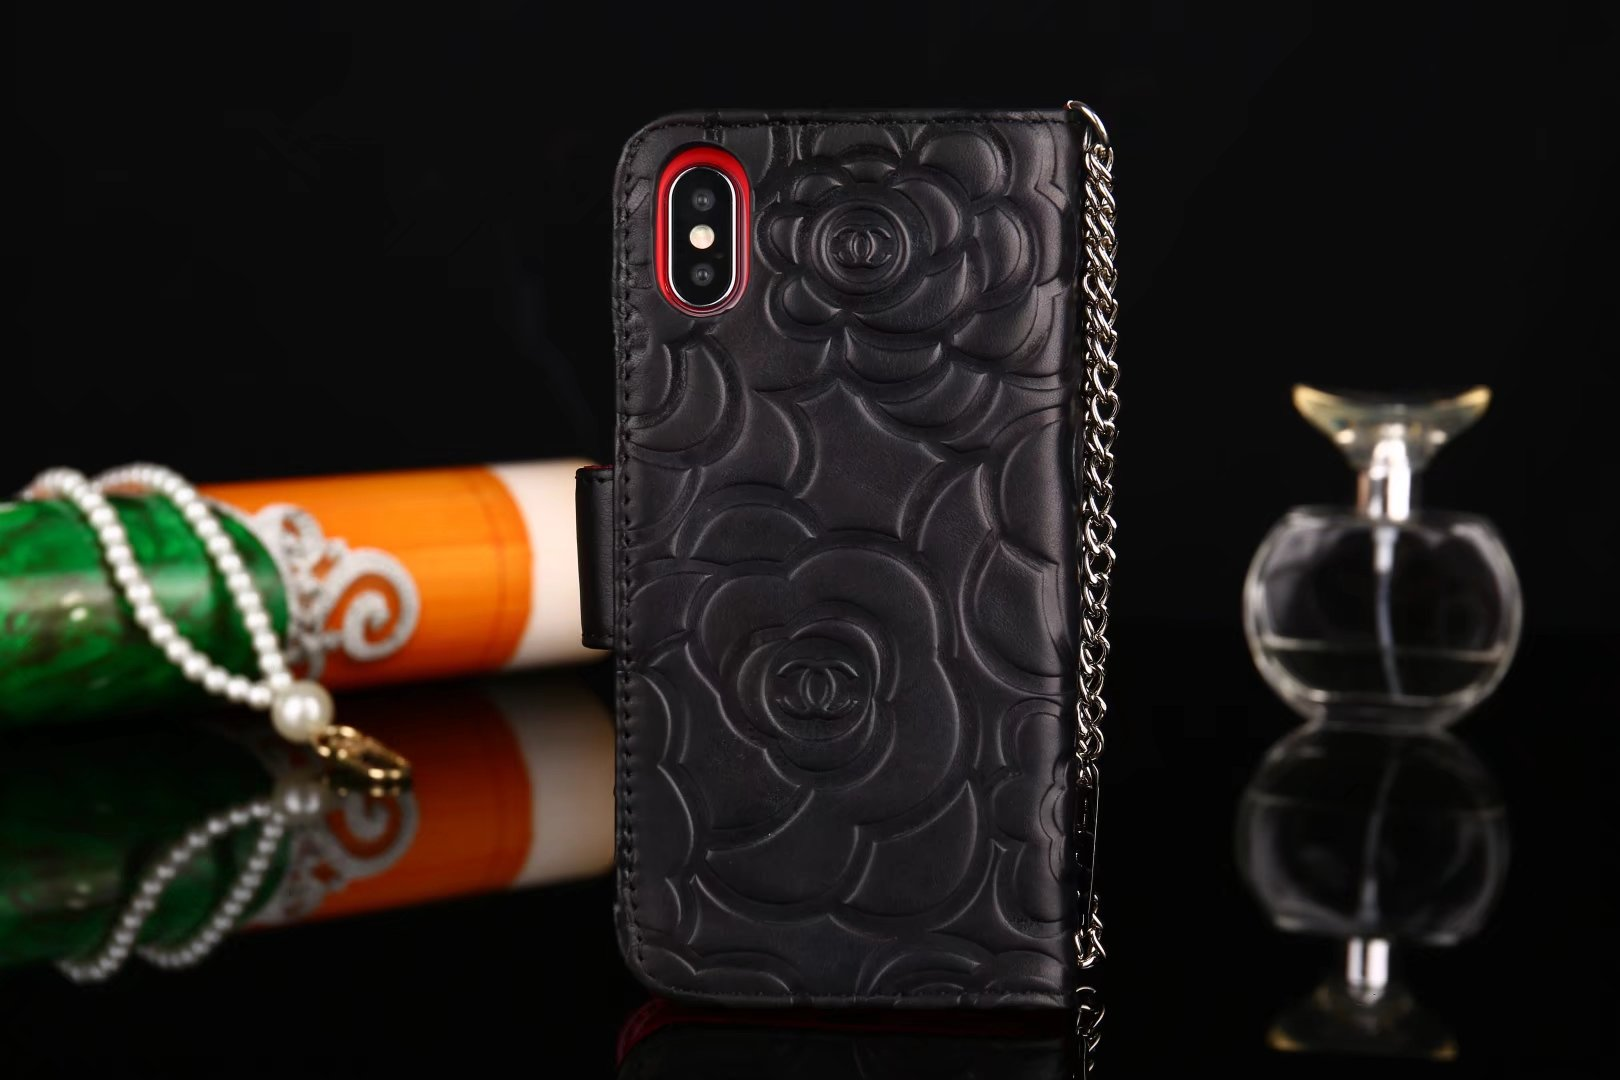 iphone hülle selbst gestalten iphone case gestalten Chanel iphone X hüllen iphone X größe iphone X aX braun iphone X s hülle leder iphone X hülle leder rot iphone X bilder handyhüllen online shop